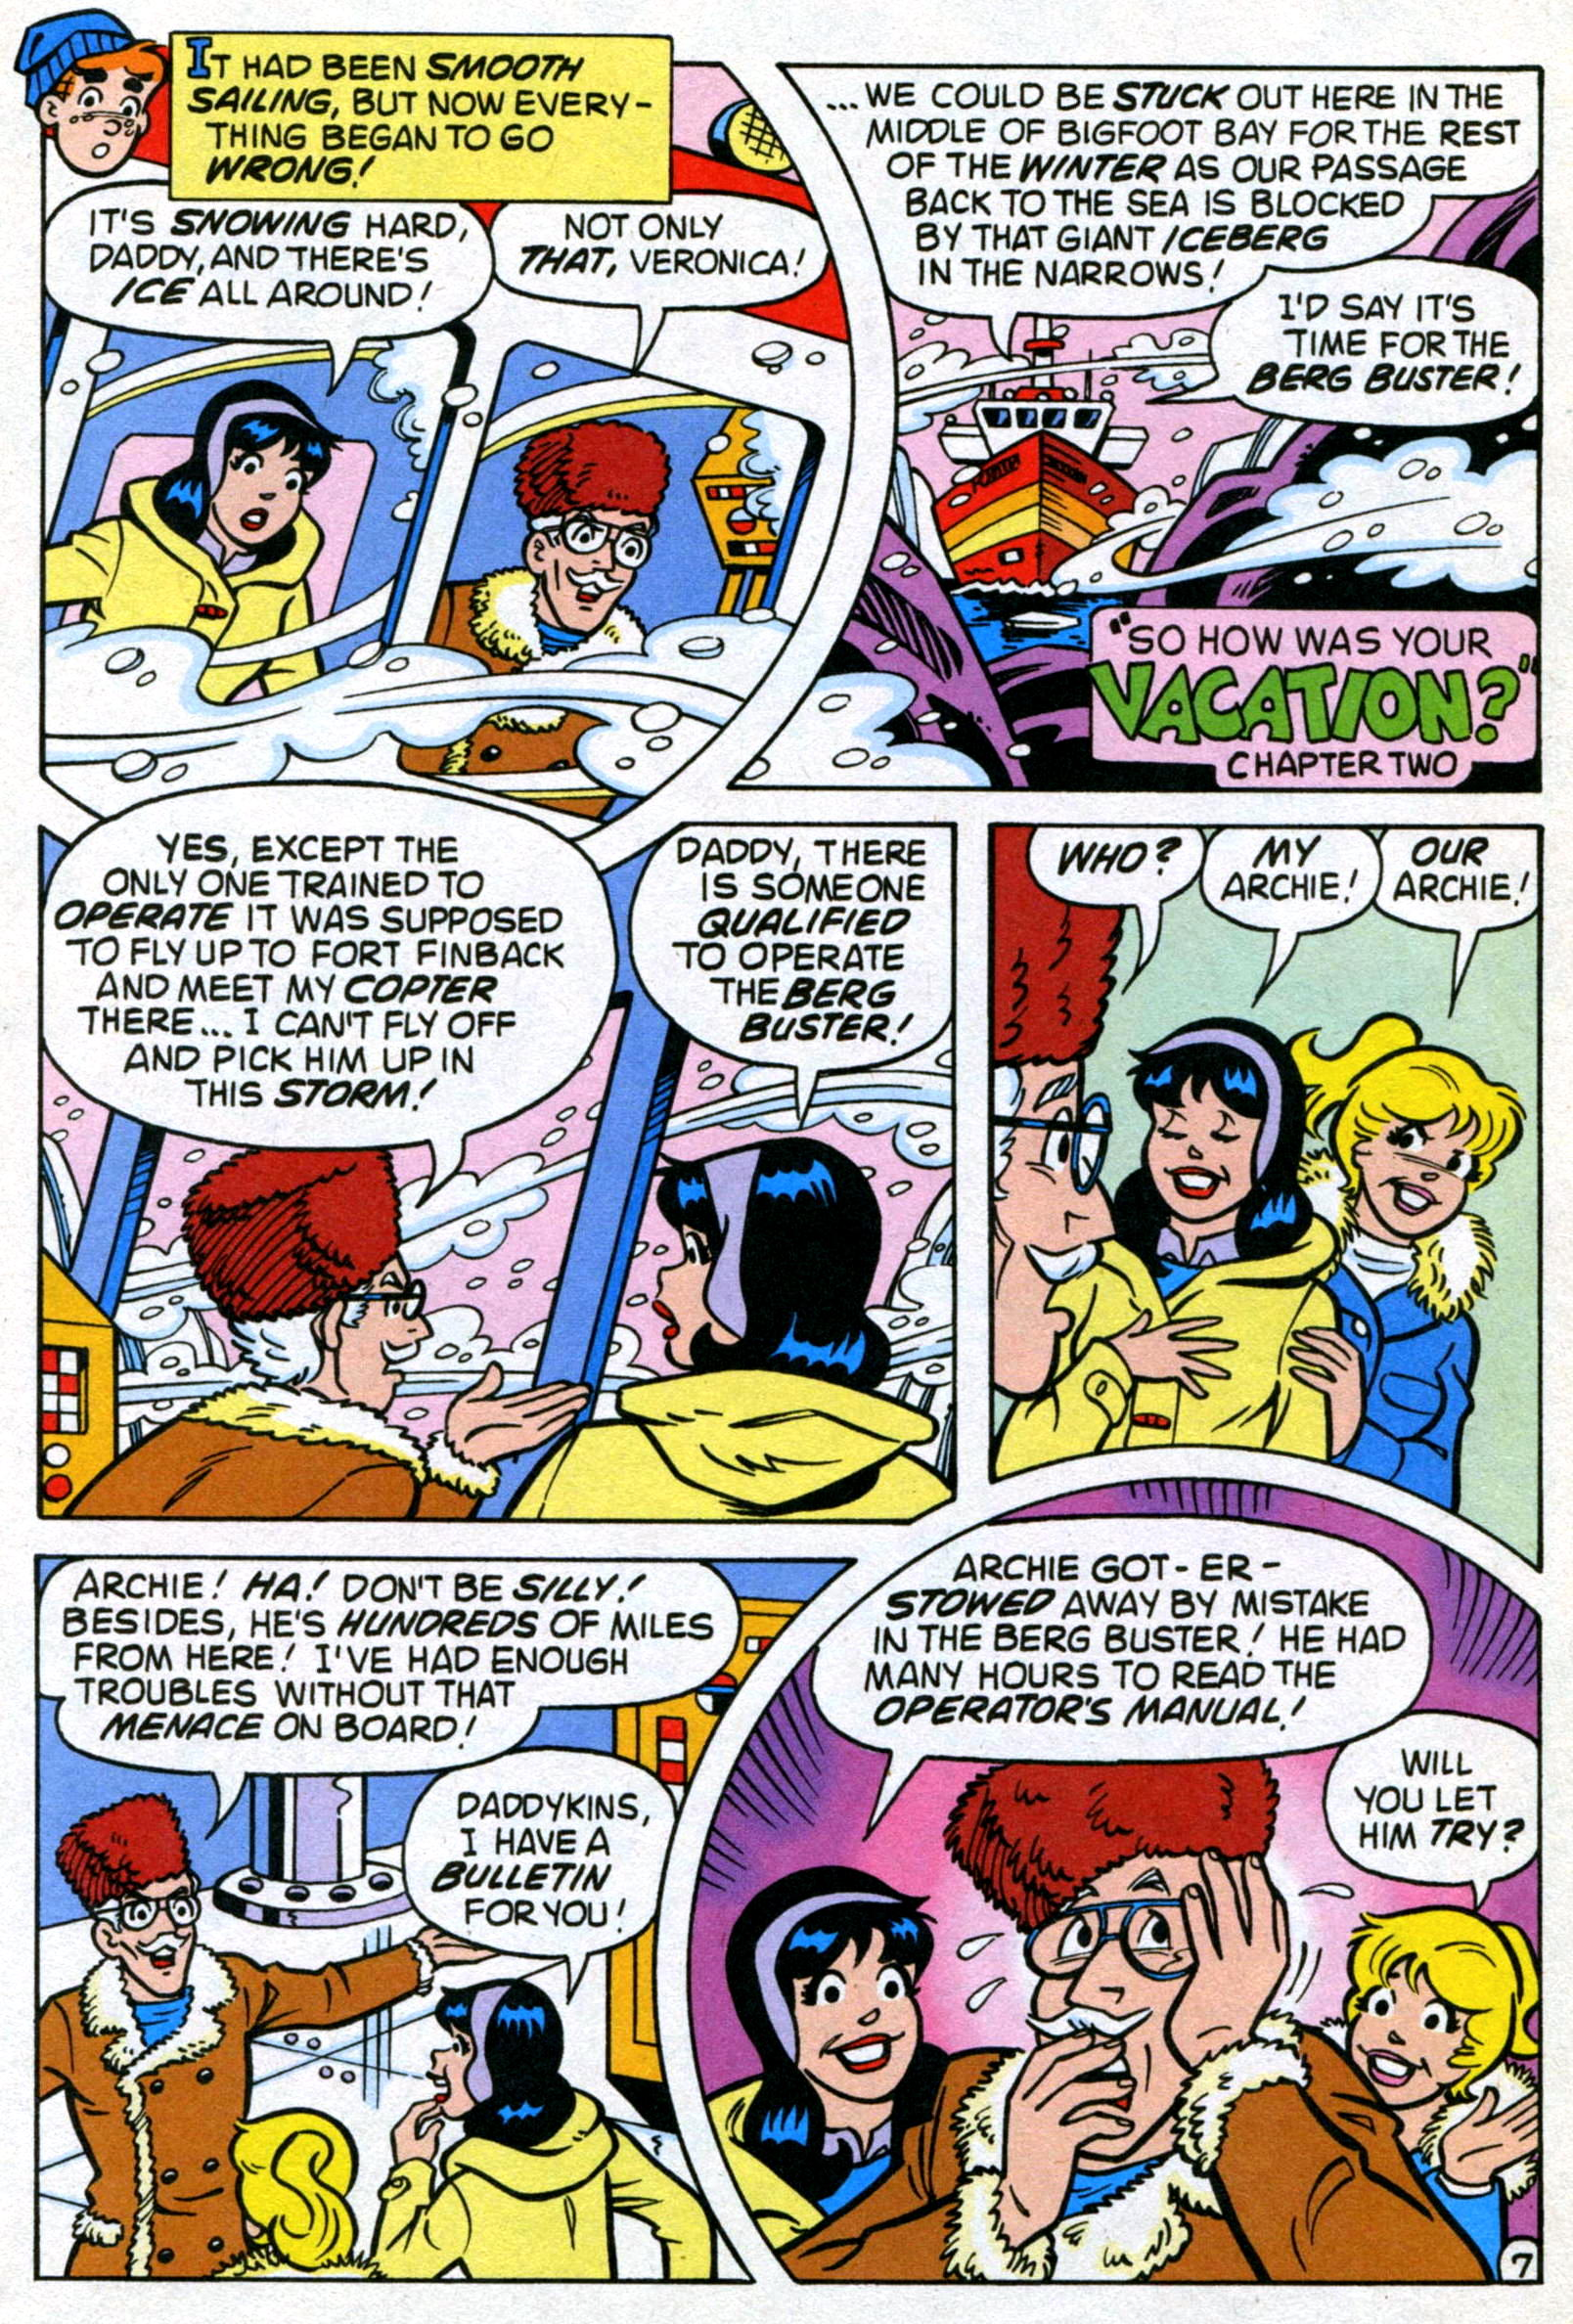 Read online World of Archie comic -  Issue #22 - 10